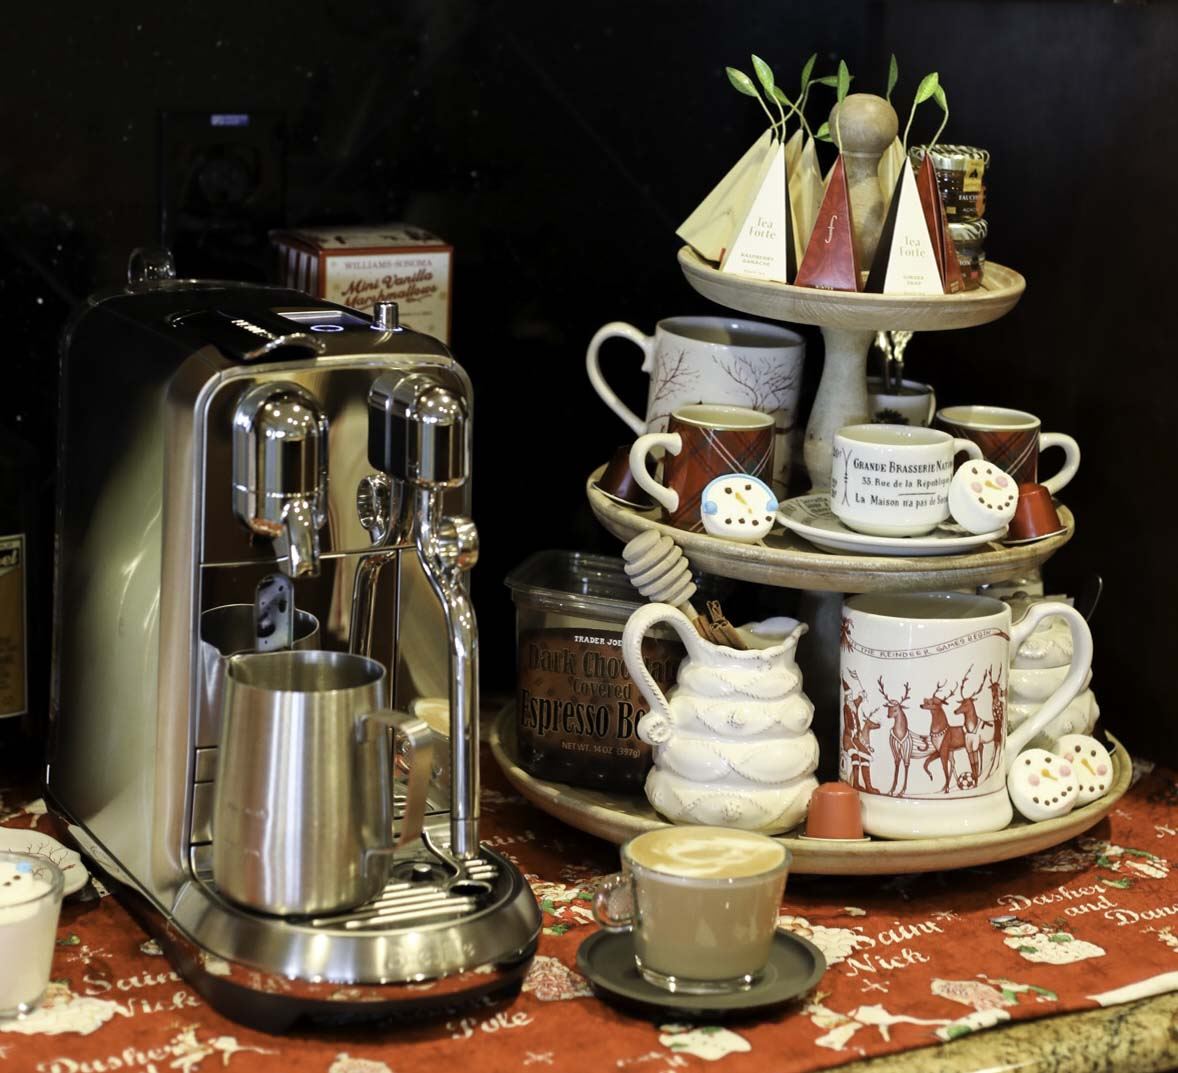 How to Get Your Coffee Bar Ready for the Holidays